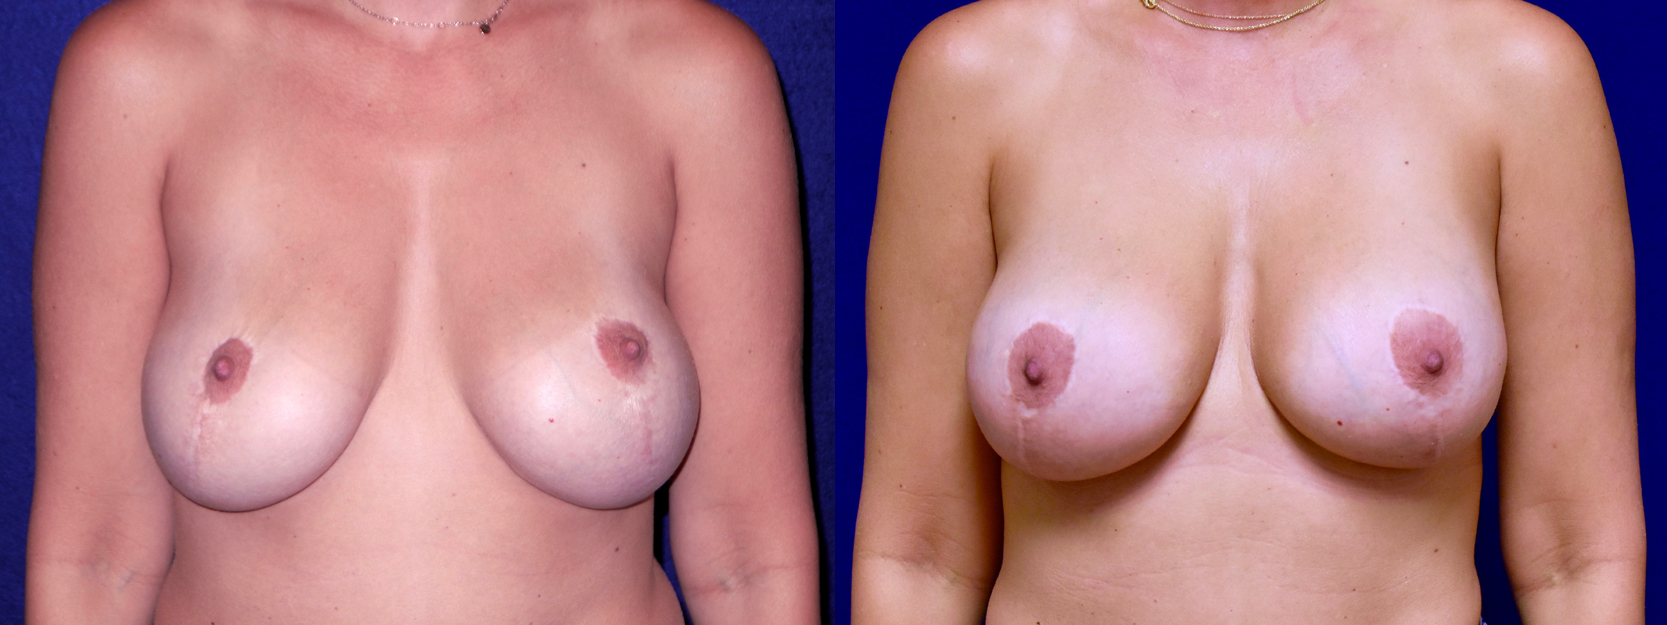 Frontal View - Breast Implant Revision